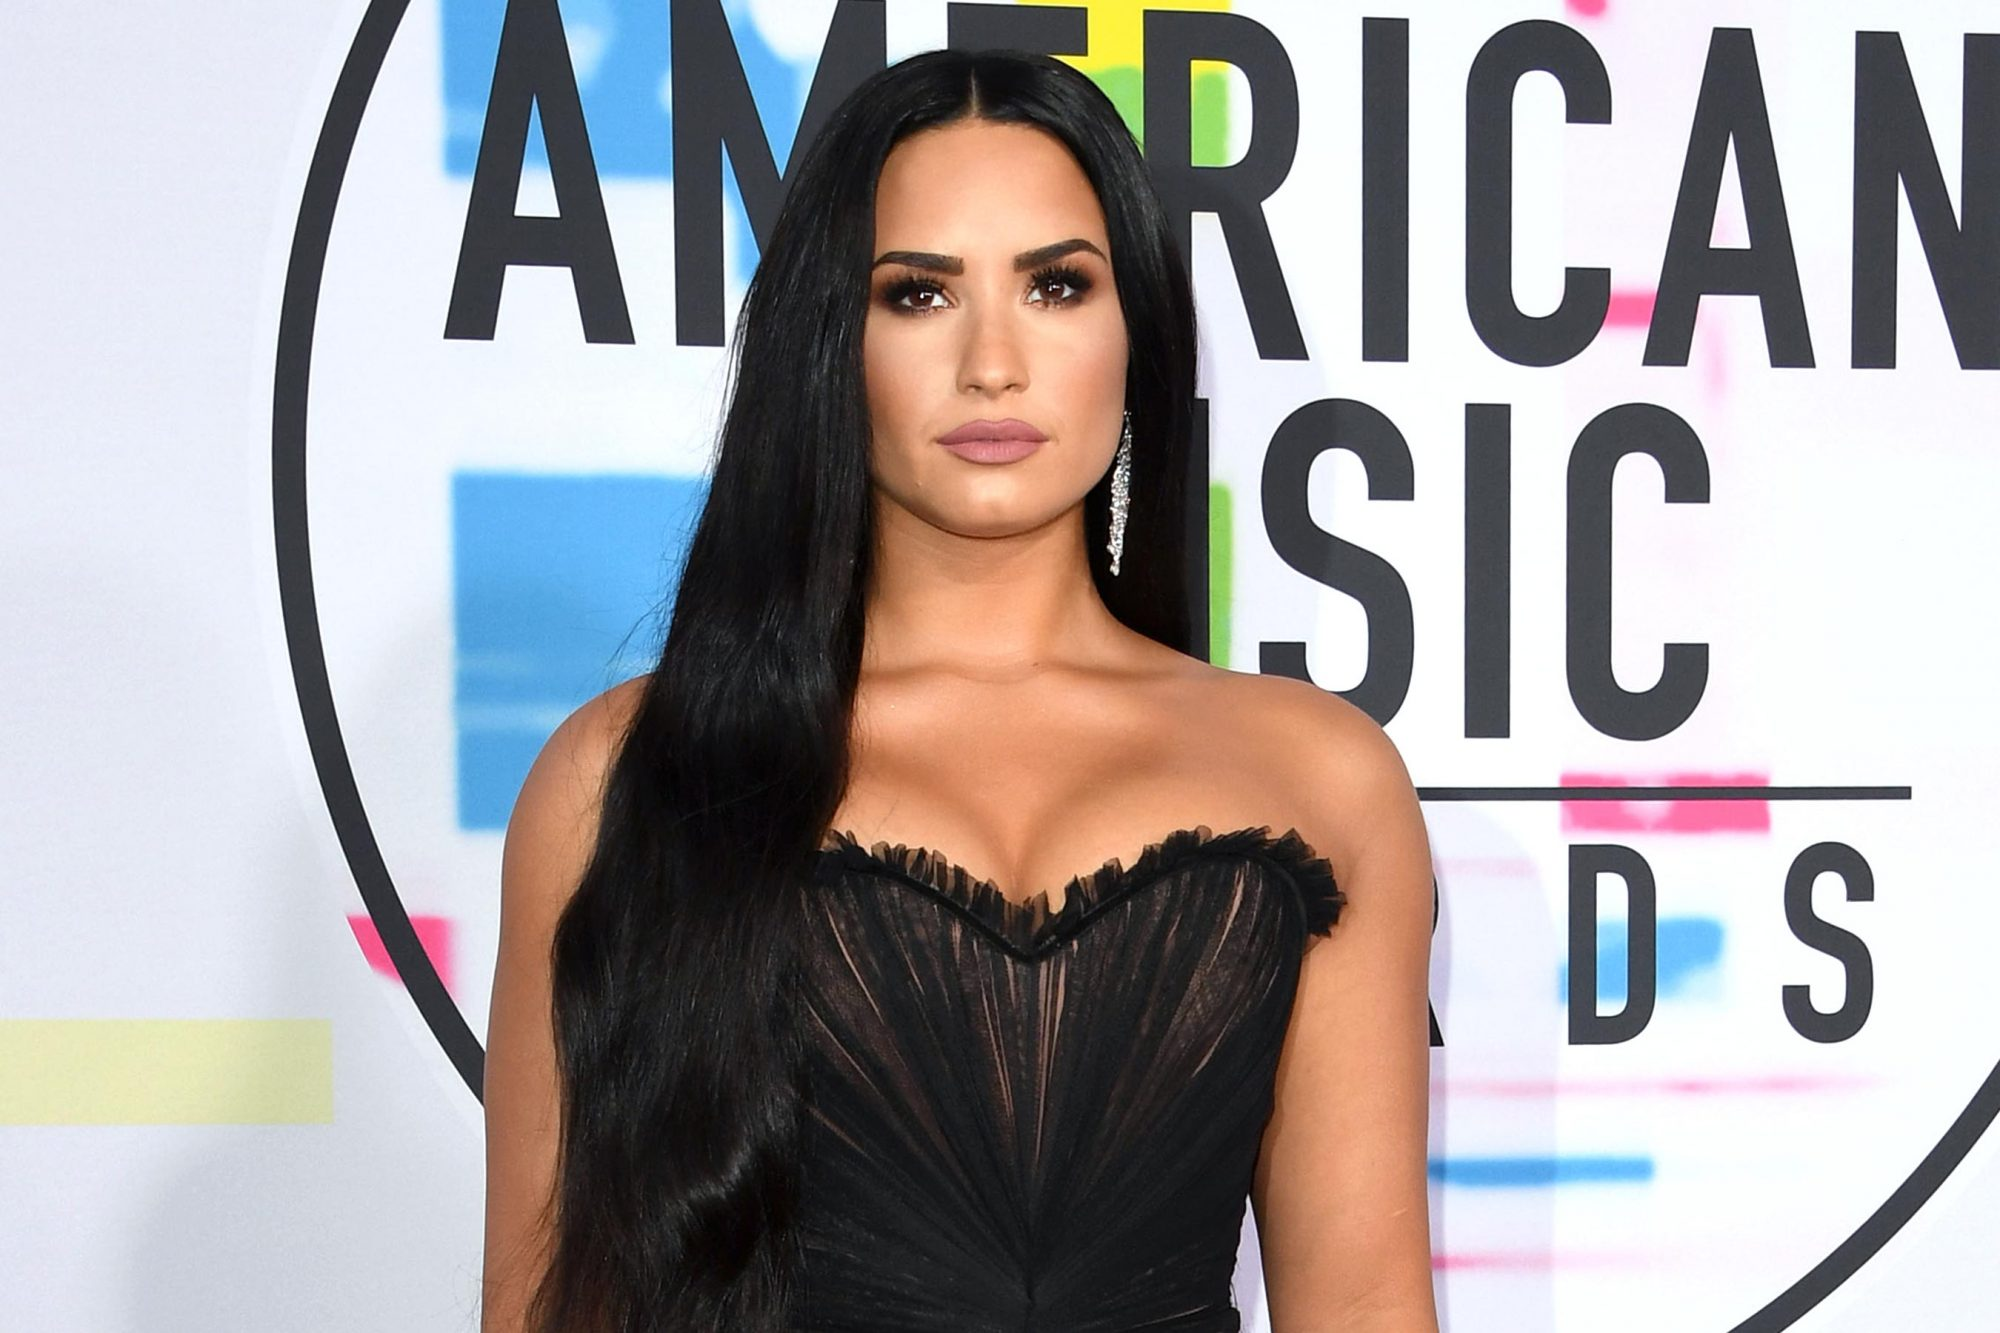 Demi Lovato Breaks Silence After Overdose and Hospitalization: 'I Will Keep Fighting'